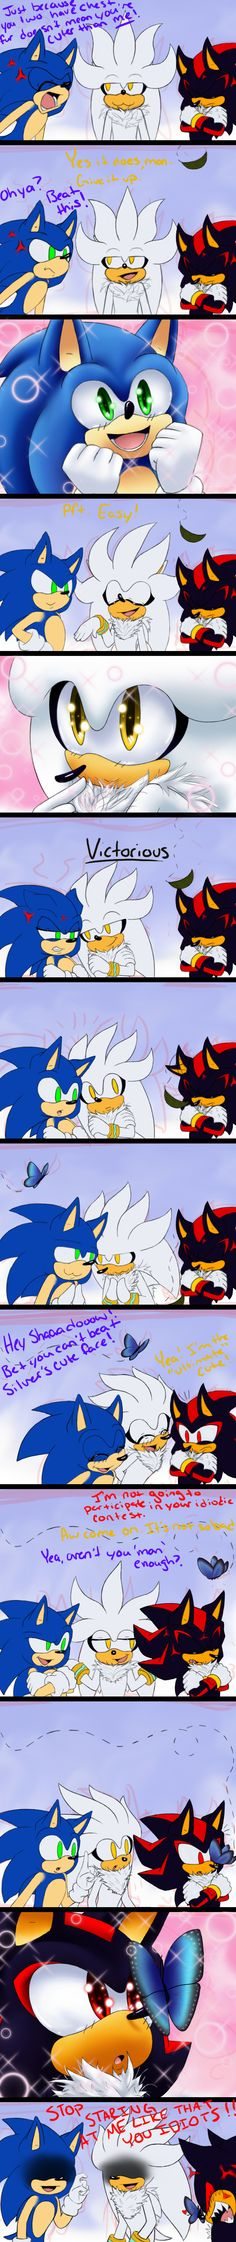 267 Best Sonic Memes Comics Images Videogames Sonic Funny